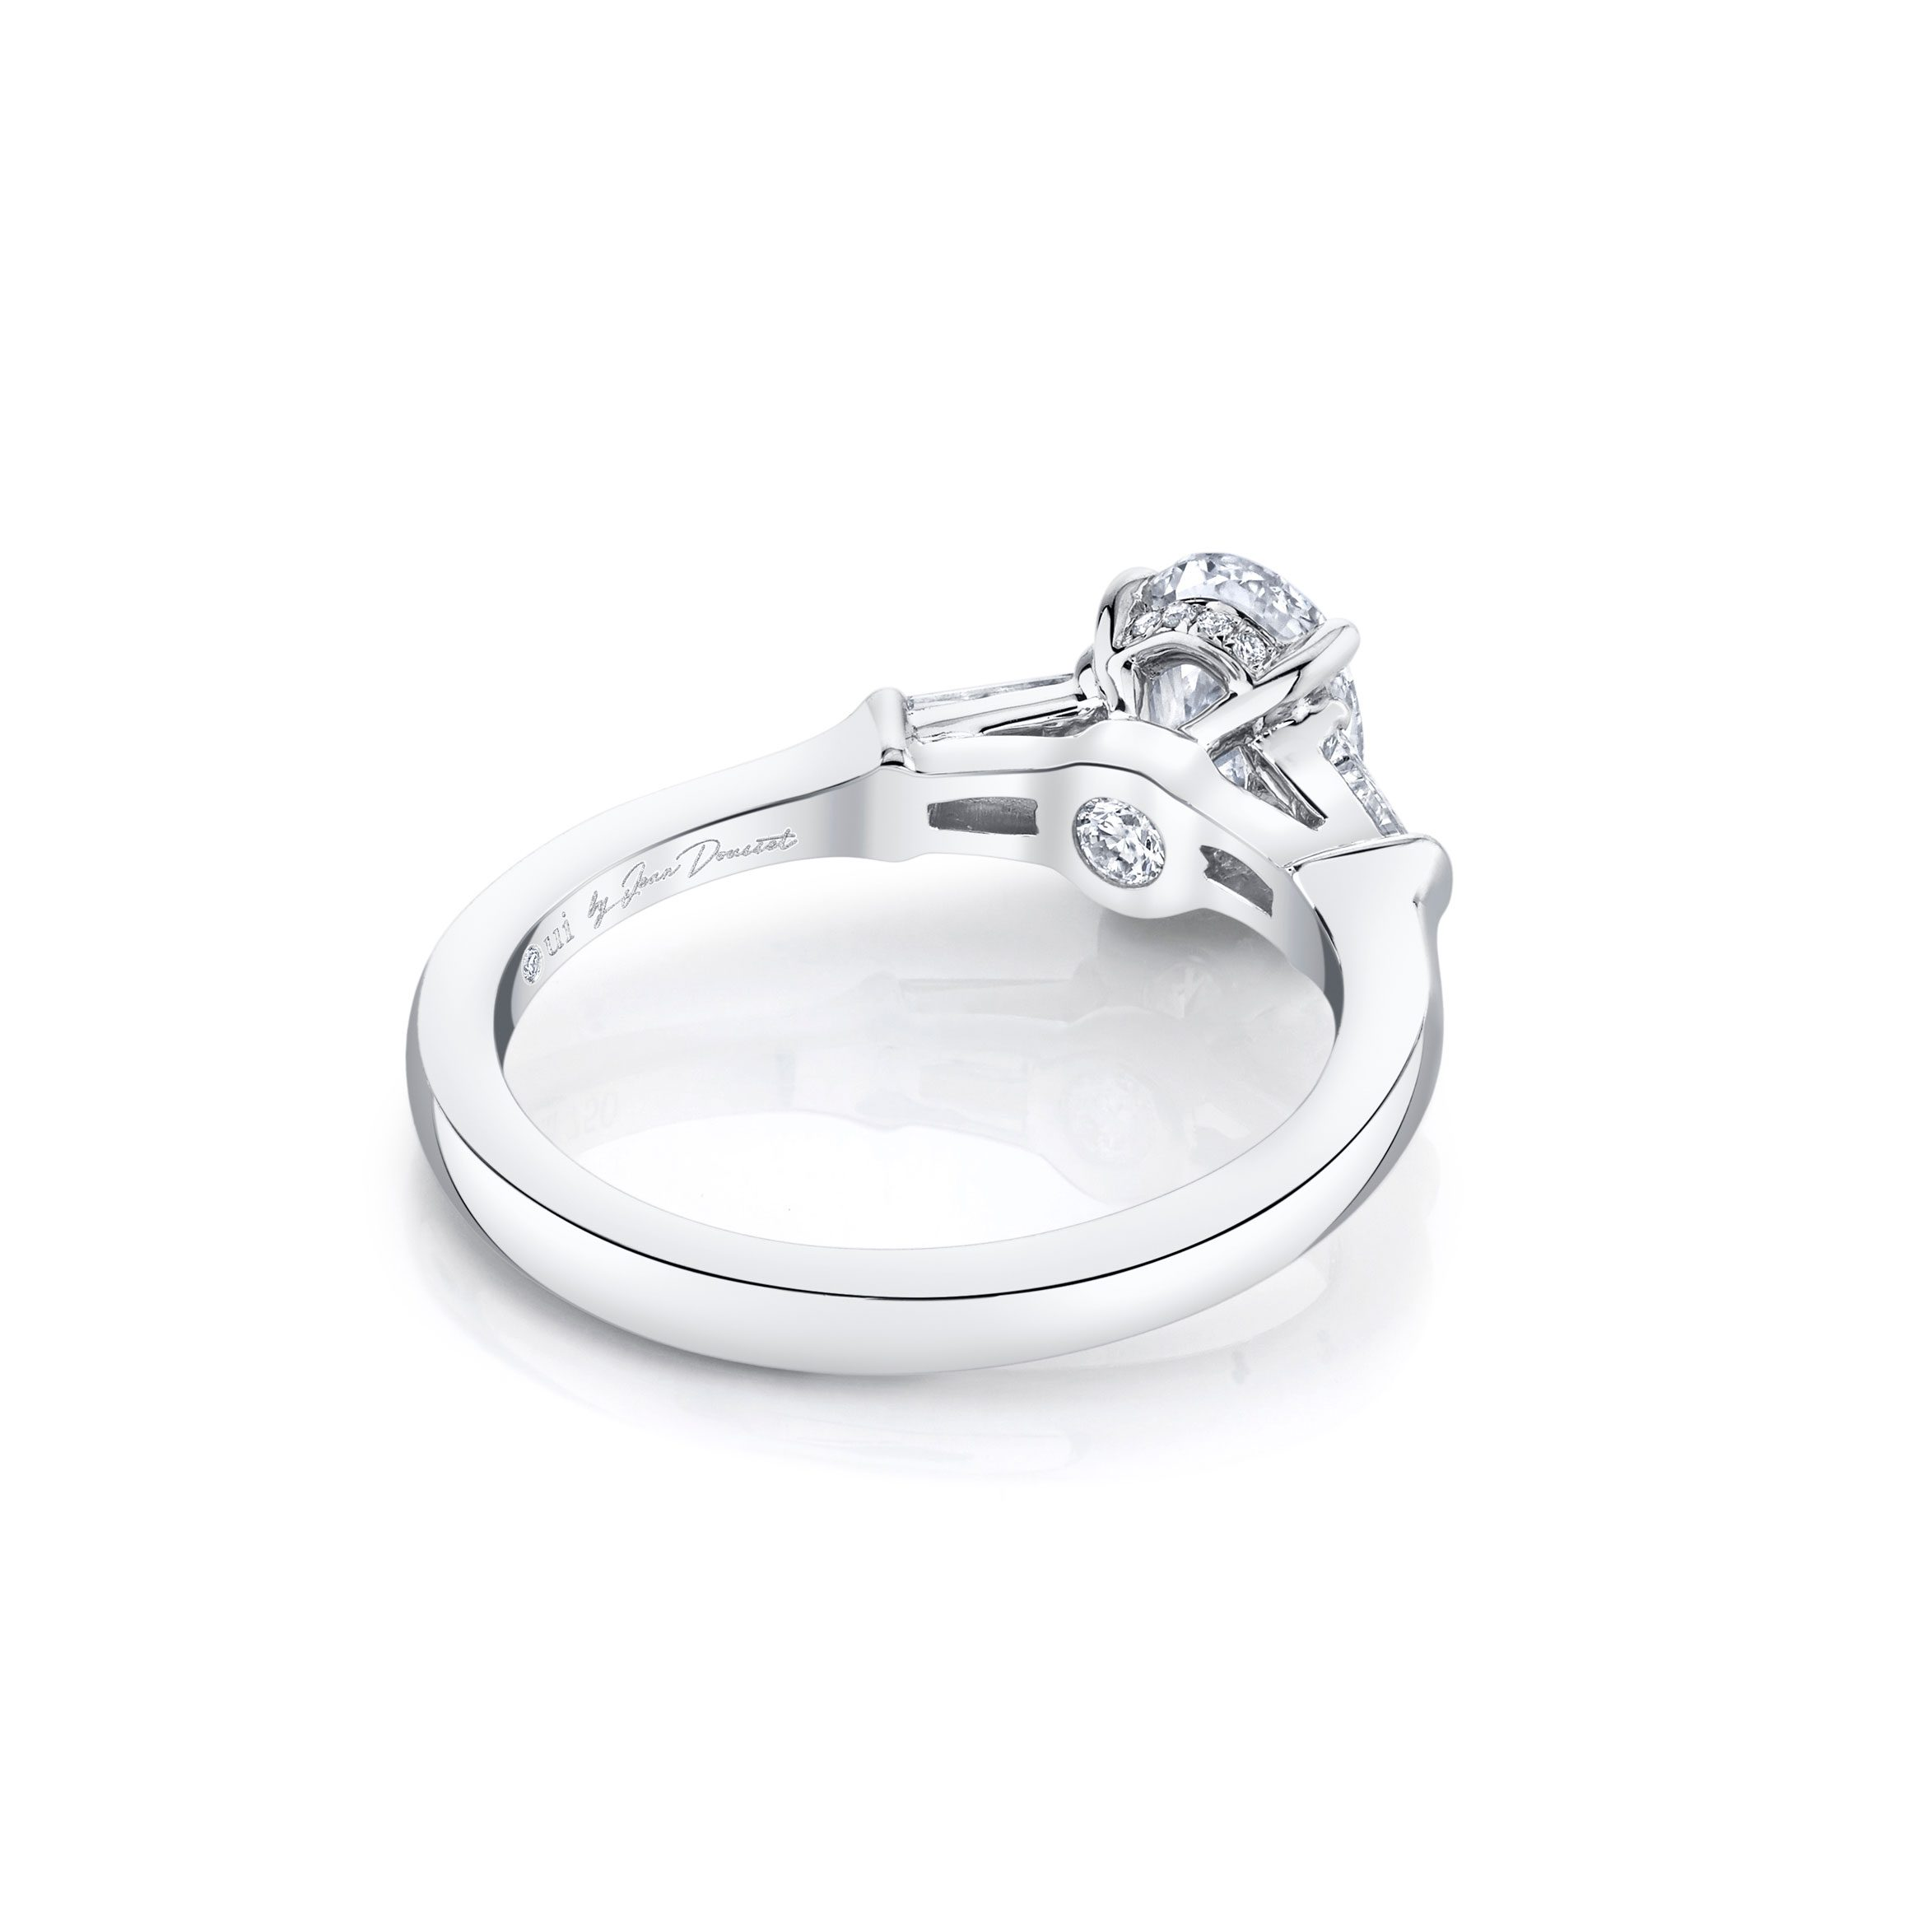 Claire Oval Three Stone Engagement Ring with tapered baguette diamond side stones in 18k White Gold Back View by Oui by Jean Dousset